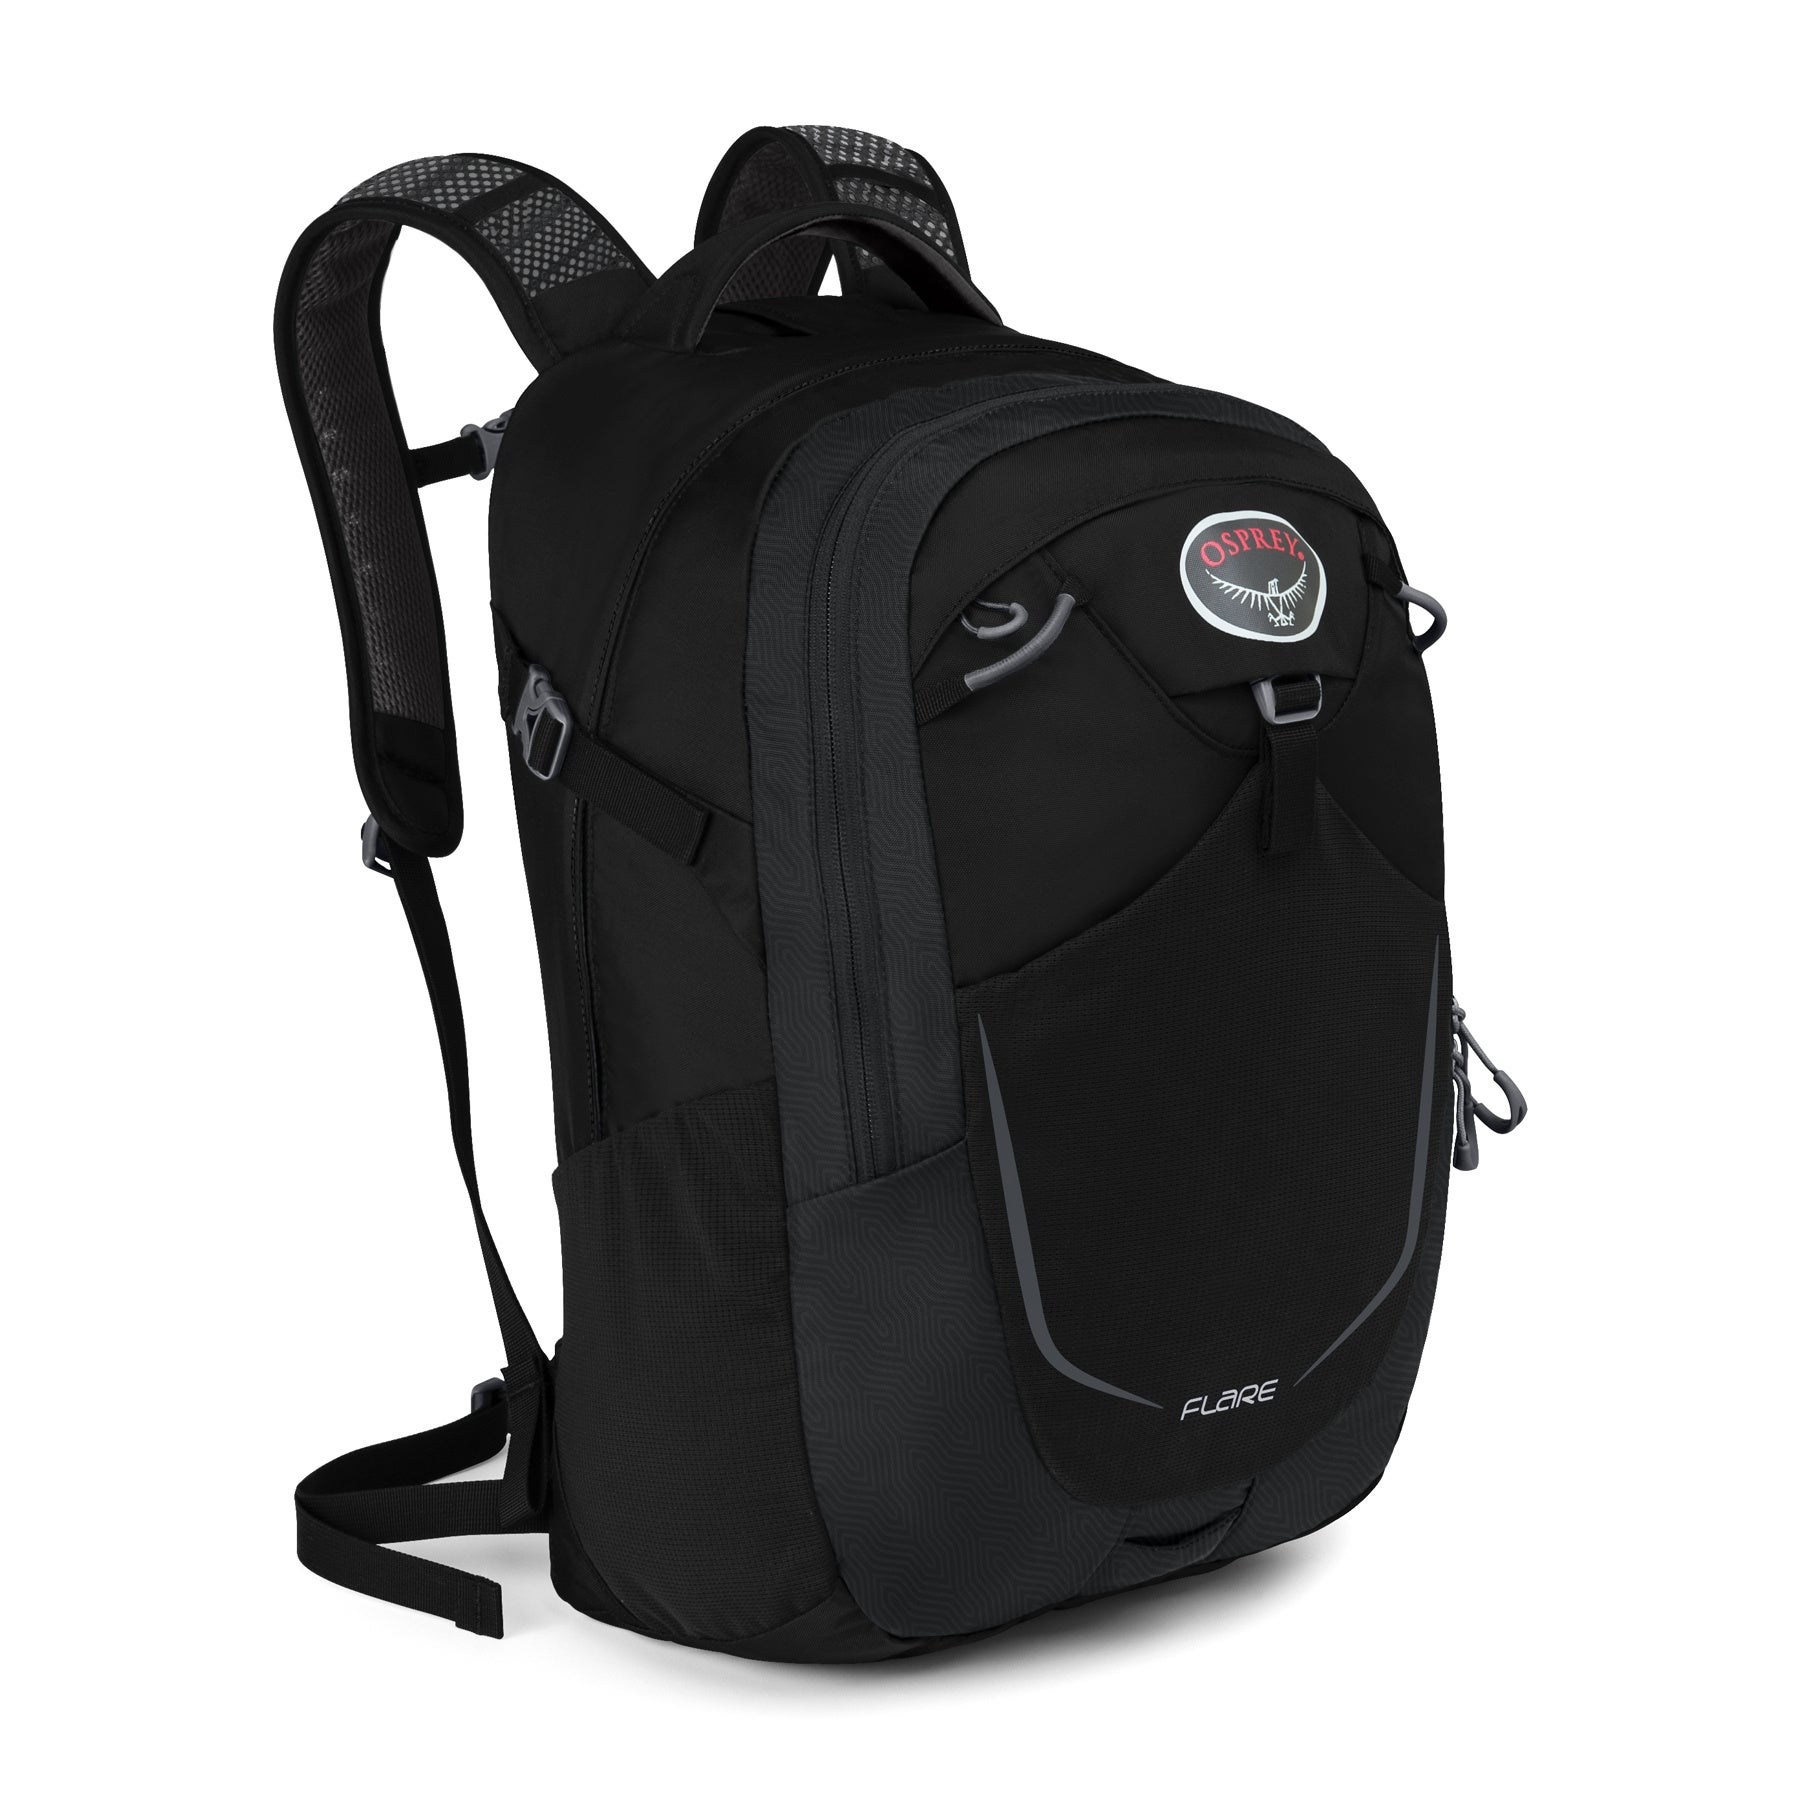 Osprey Flare 22 Laptop Backpack - Black